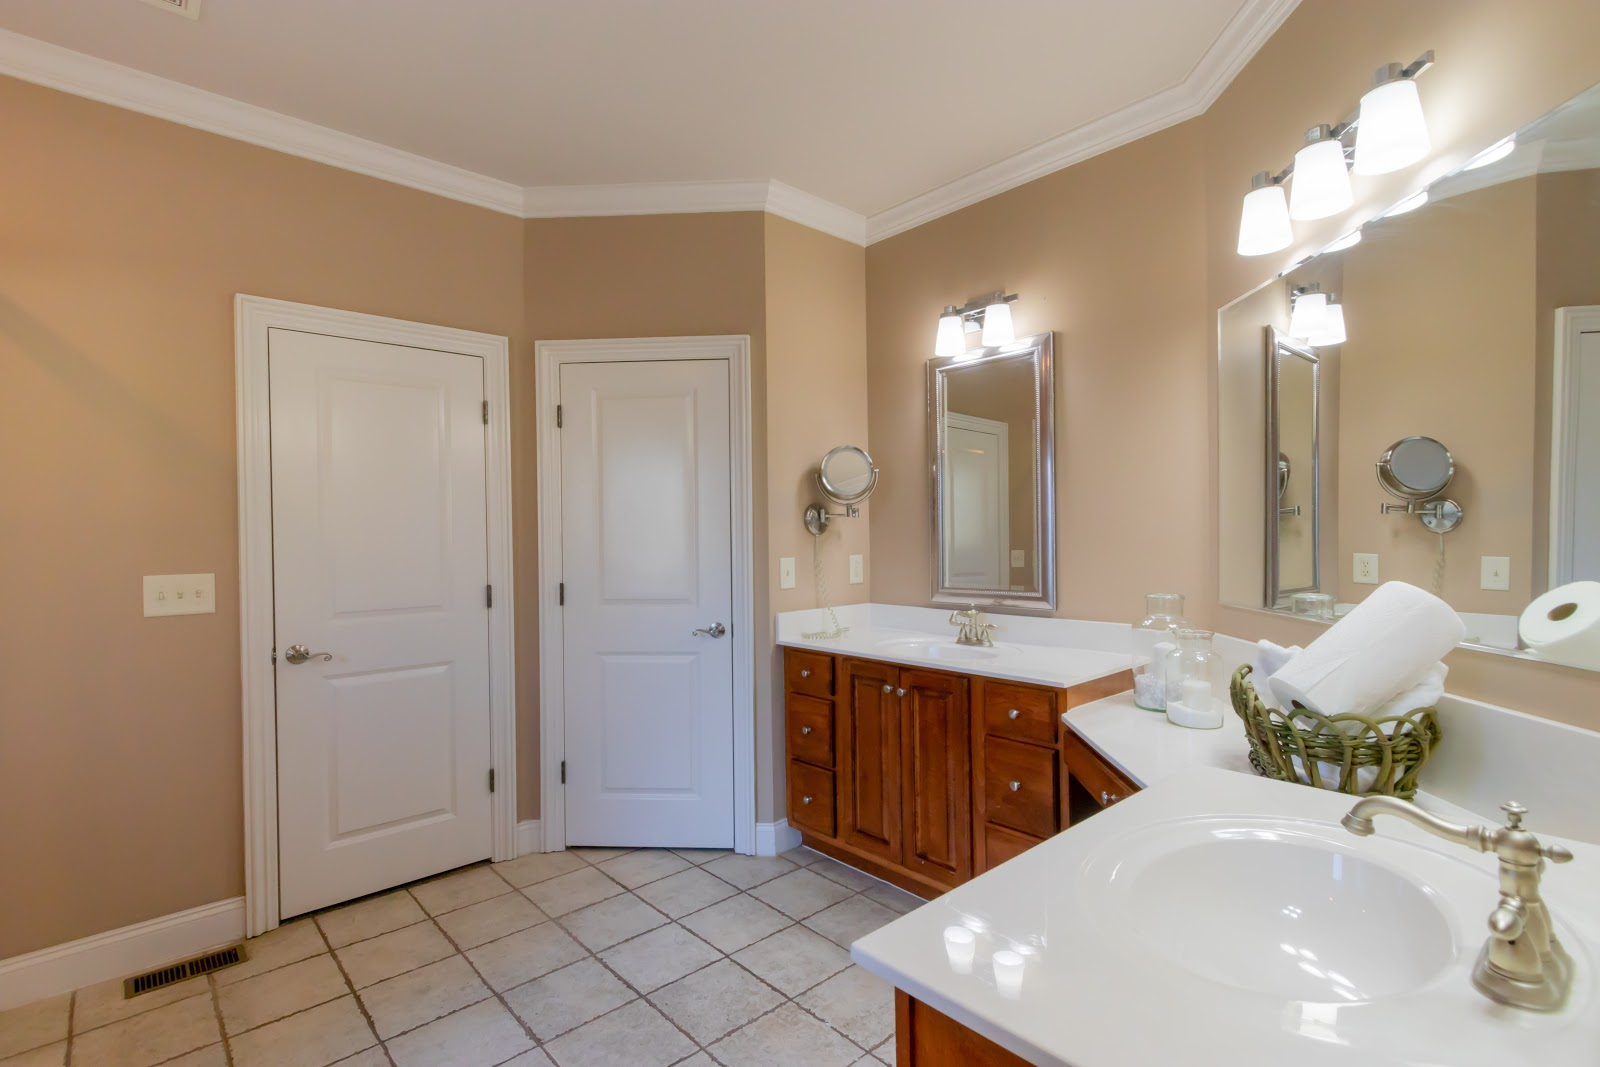 You can place a few non-bulky items on the master bathroom counters if you don't want to leave them bare when staging.